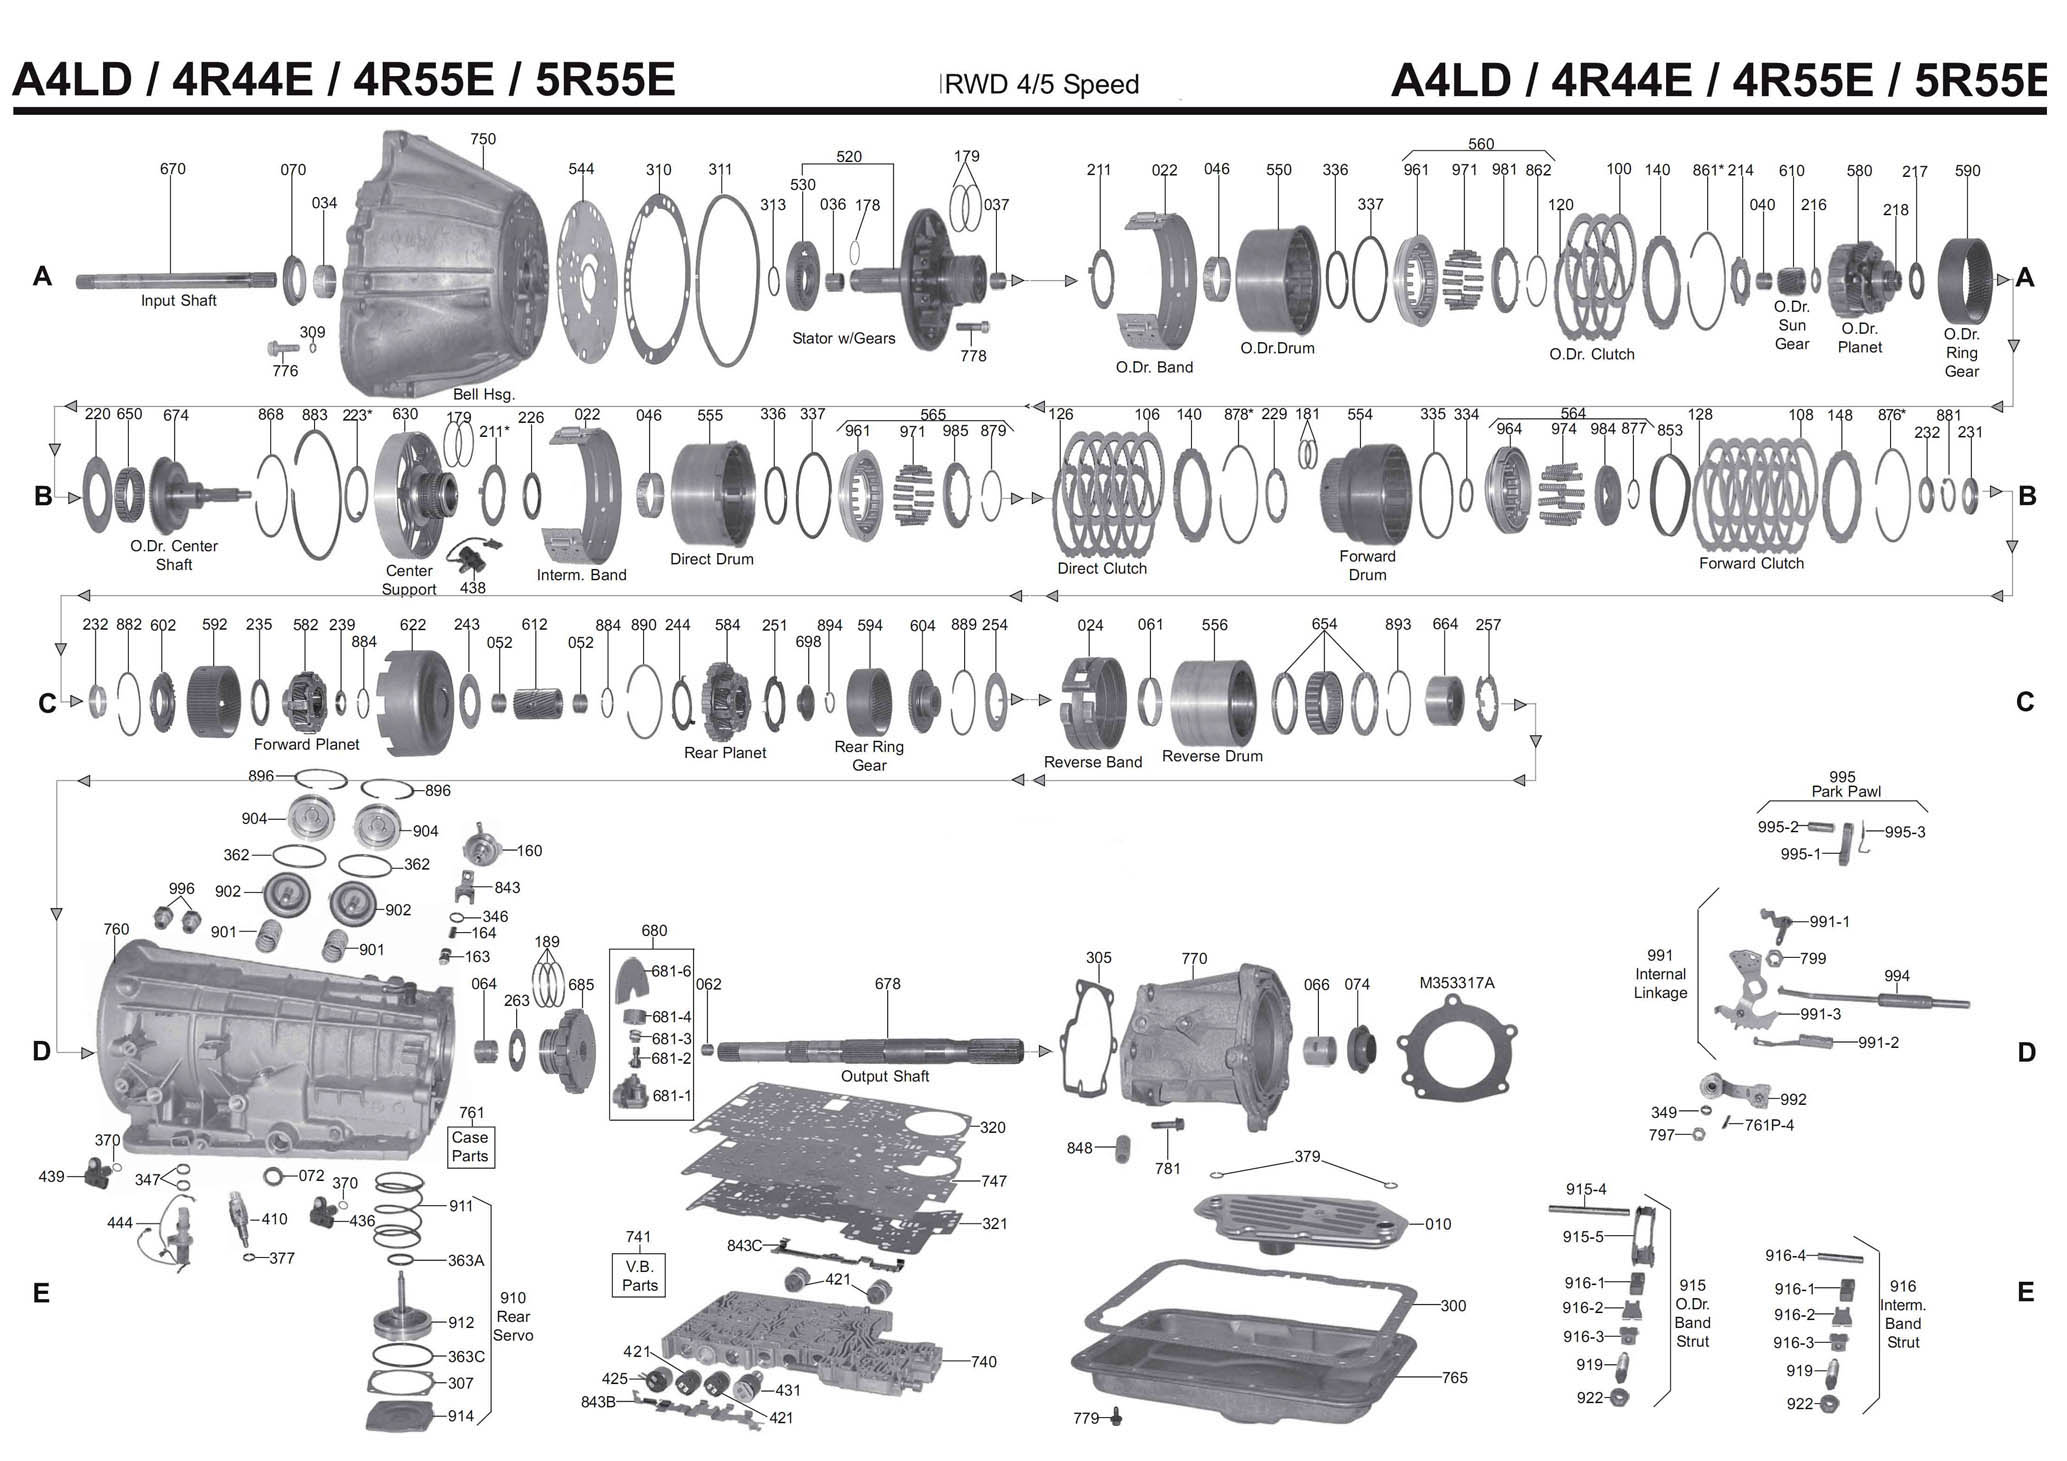 transmission repair manuals a4ld-e, 4r44e /4r55e (С3 ... a4ld transmission overhaul diagrams allison 740 transmission wiring diagrams